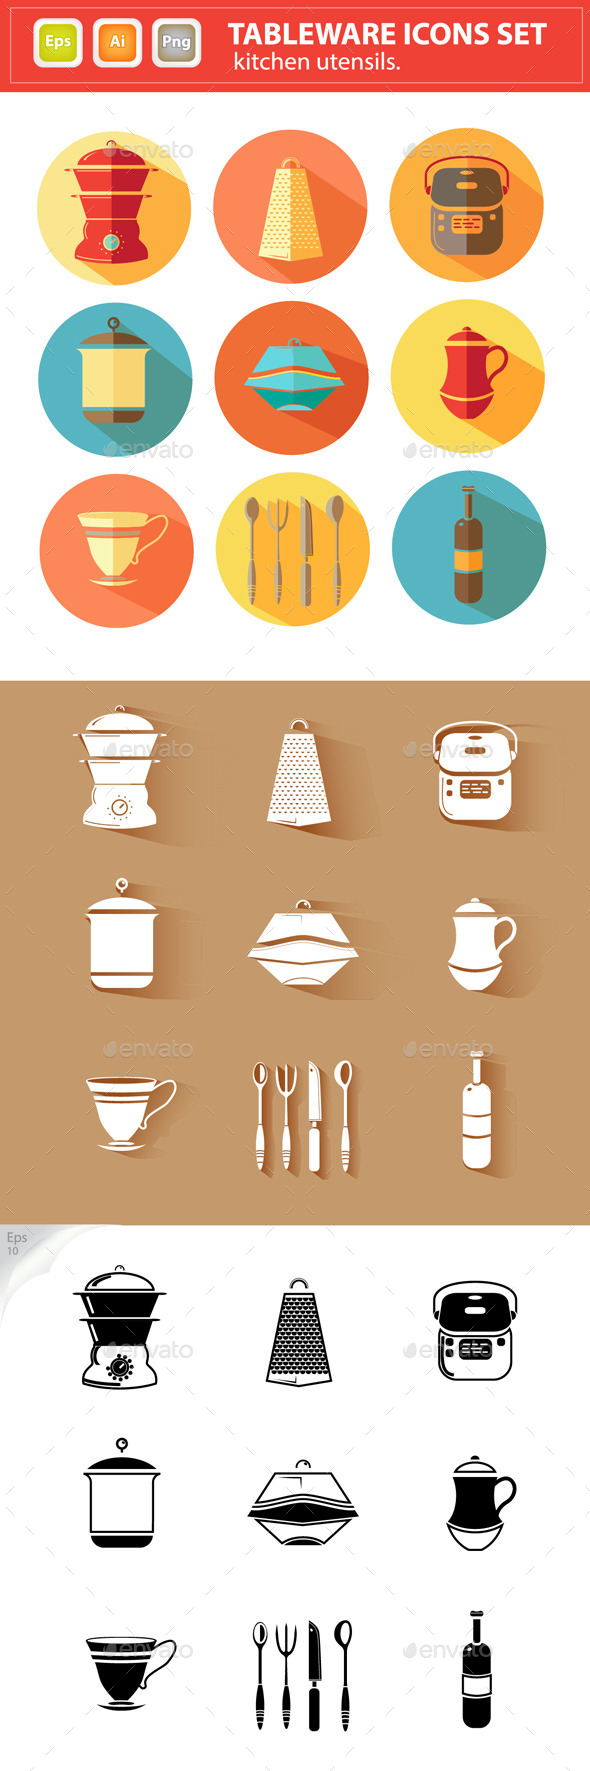 GraphicRiver Vector Tableware Icons Set Kitchen Utensils 8896022